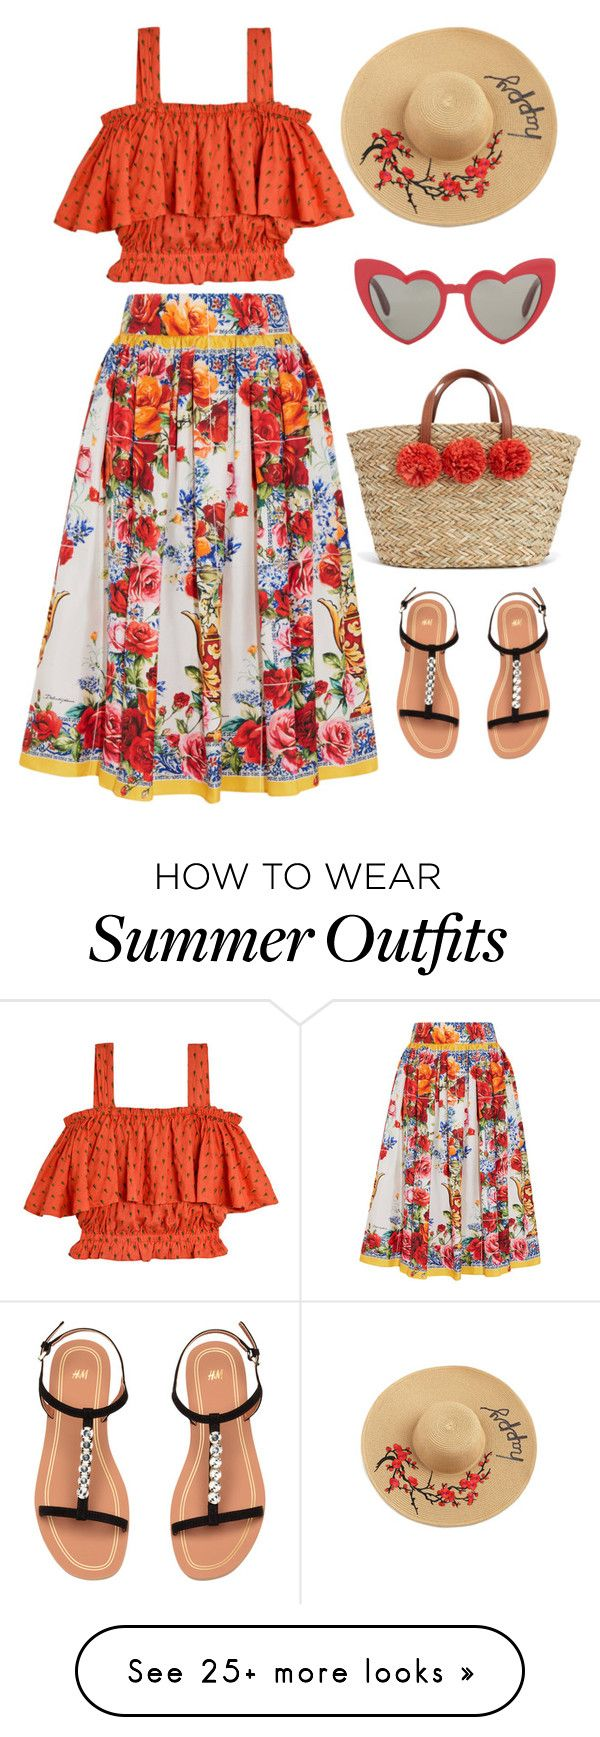 """Summer bag outfit only"" by foxxyslang on Polyvore featuring Samantha Pleet, Dolce&Gabbana and Yves Saint Laurent"